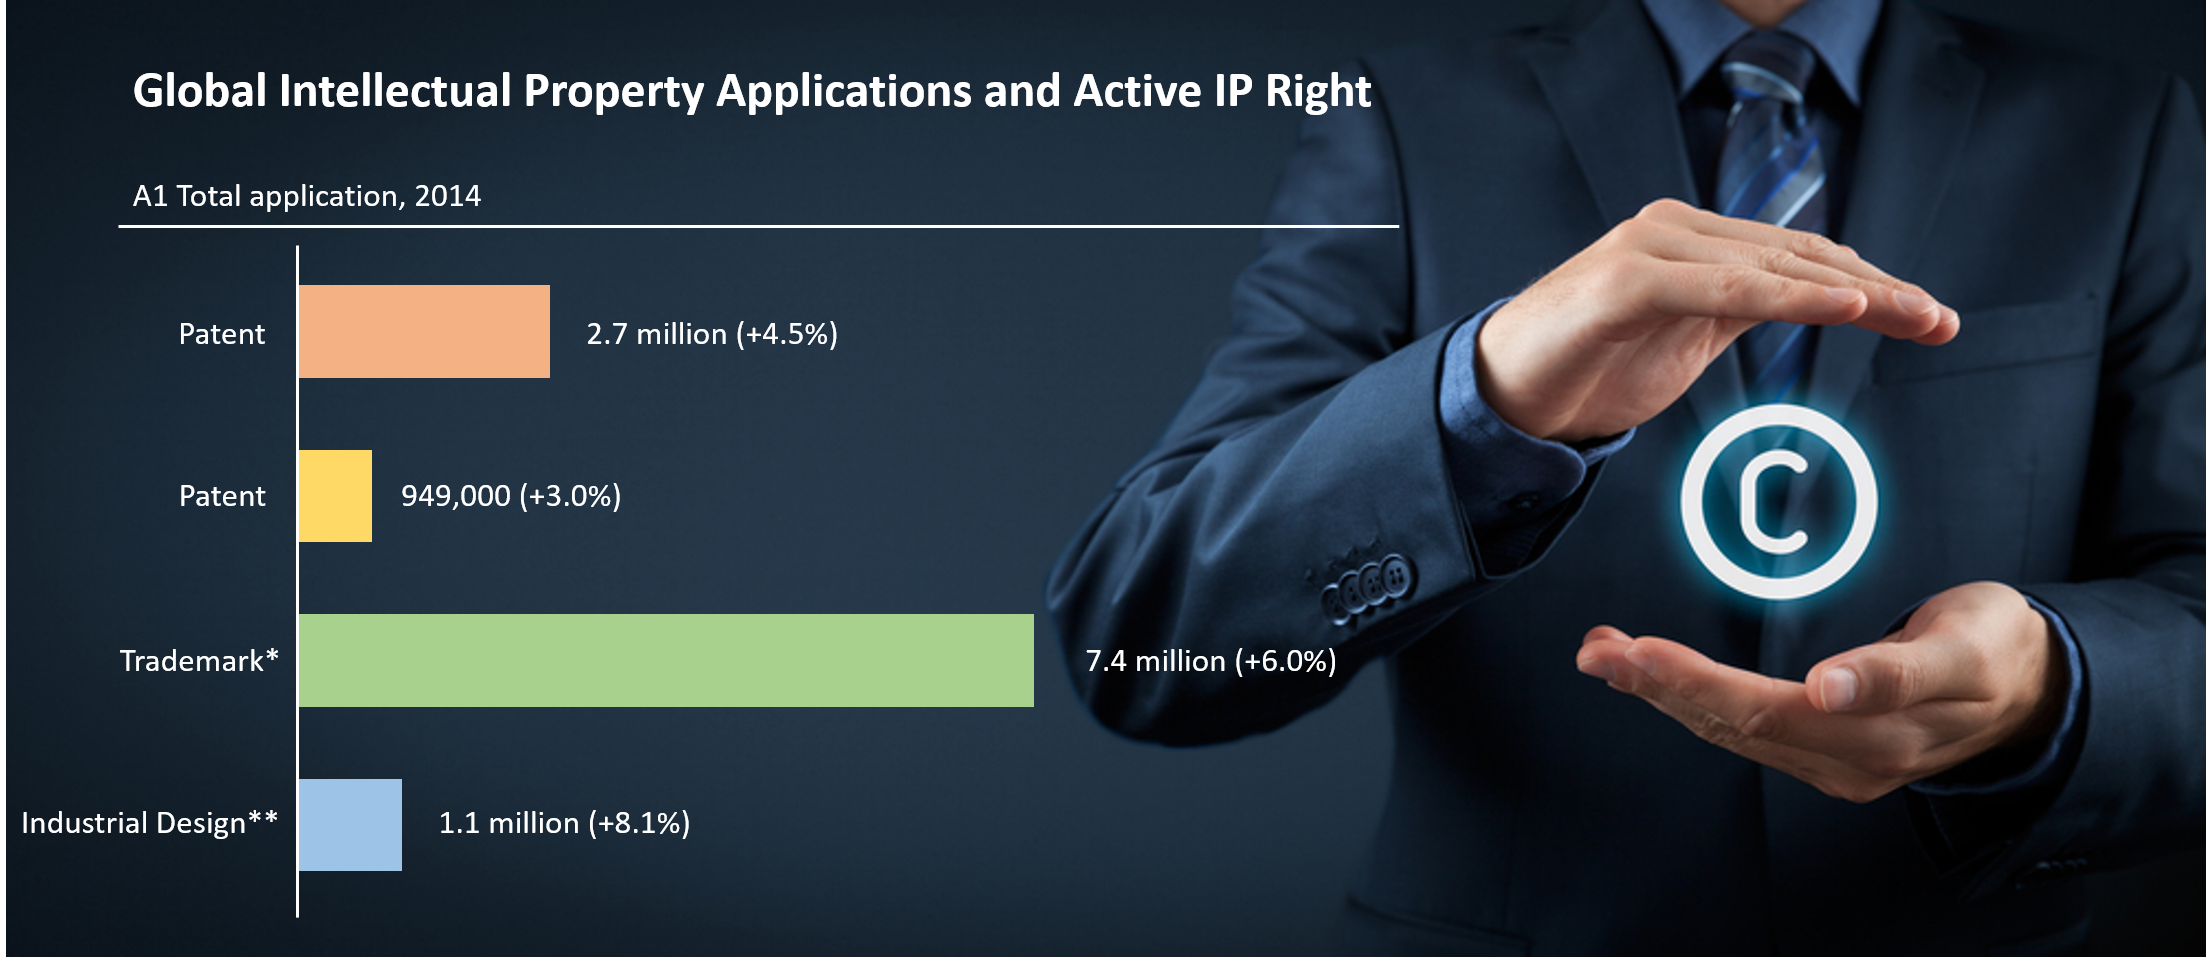 Latest Information on Global Intellectual Property Applications